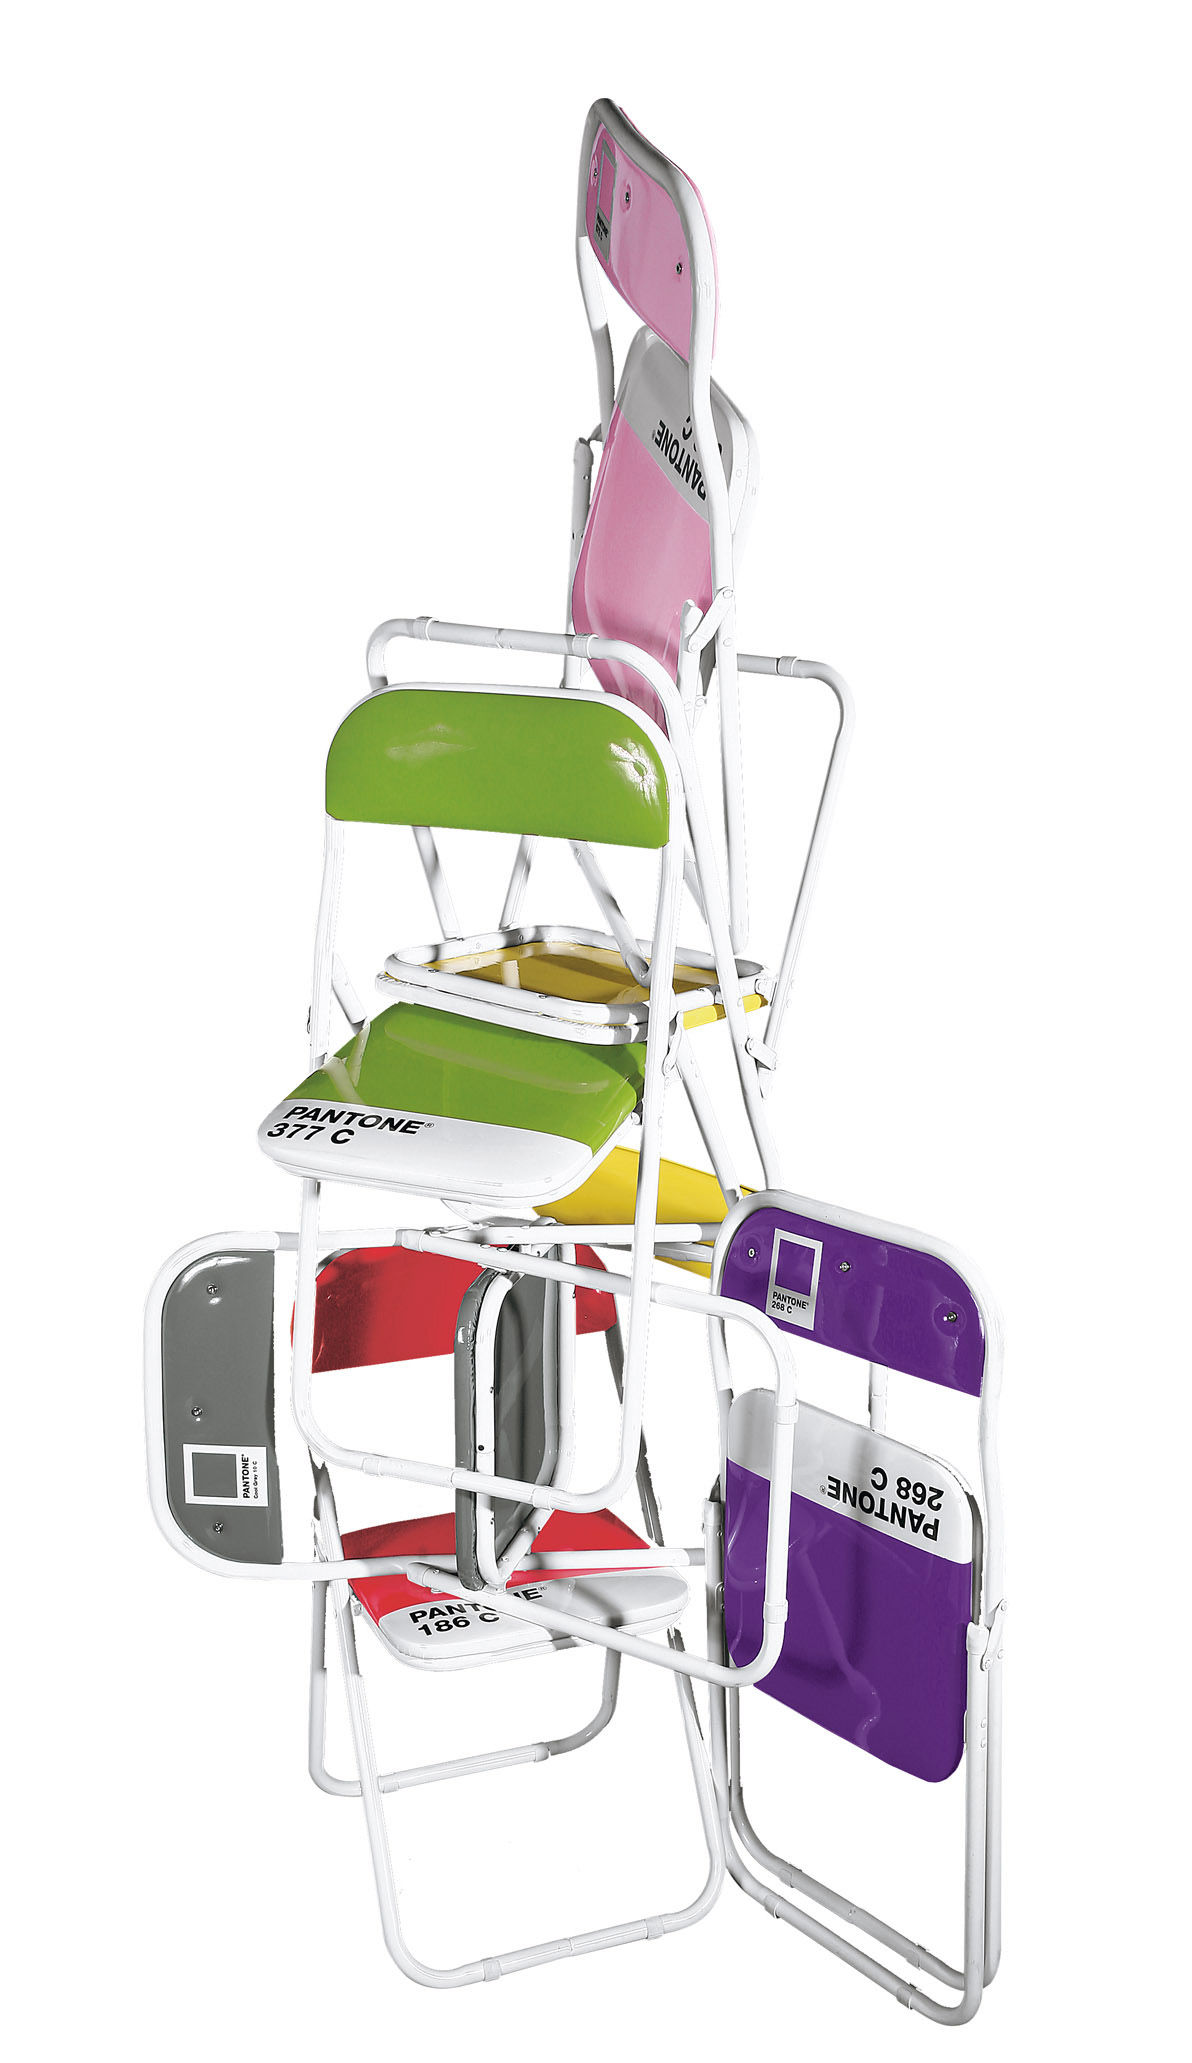 ZoomPantone Folding chair   Plastic   metal structure 186C   Ruby red  . Pantone Folding Chairs For Sale. Home Design Ideas